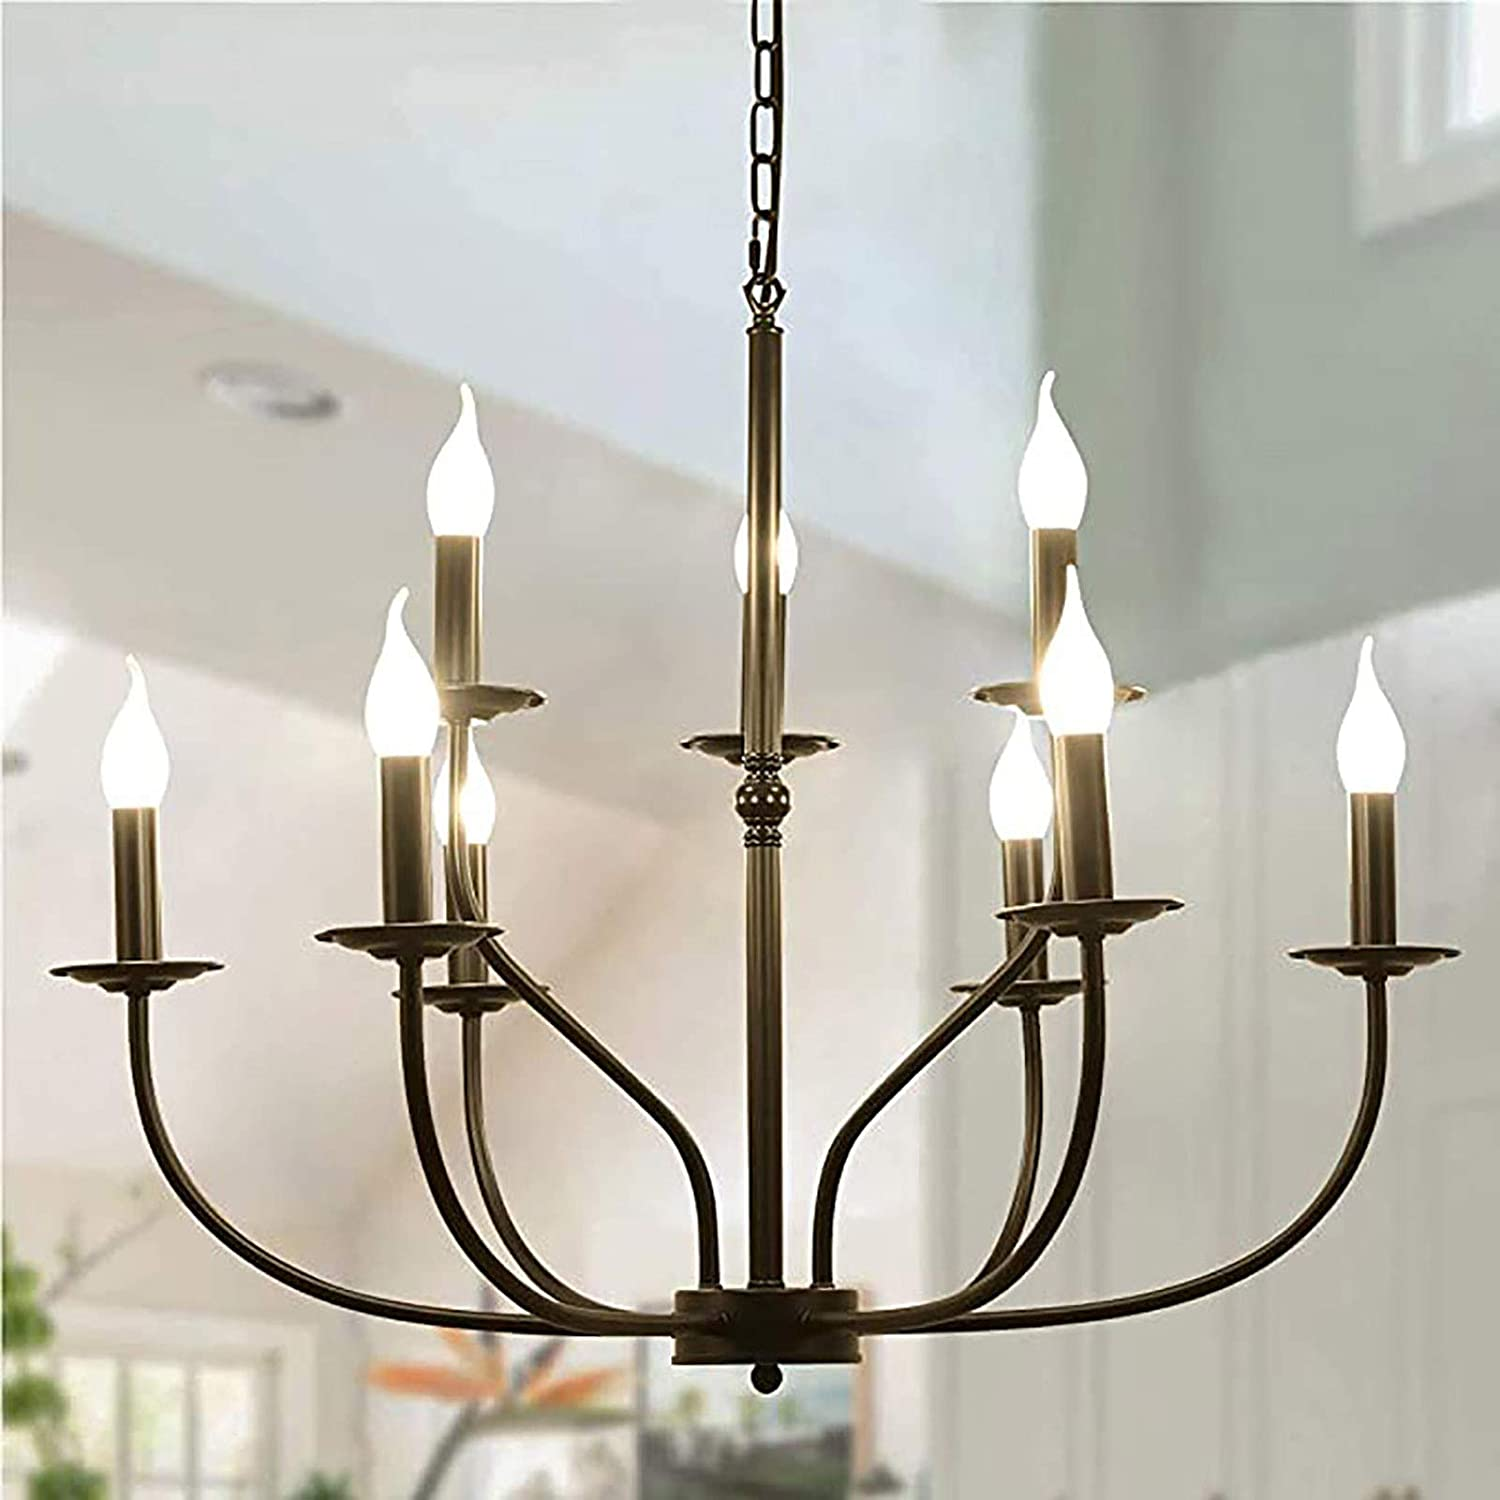 QTQHOME Farmhouse Time sale Metal Chandelier Sales of SALE items from new works 6-Light Industrial Rustic Pen